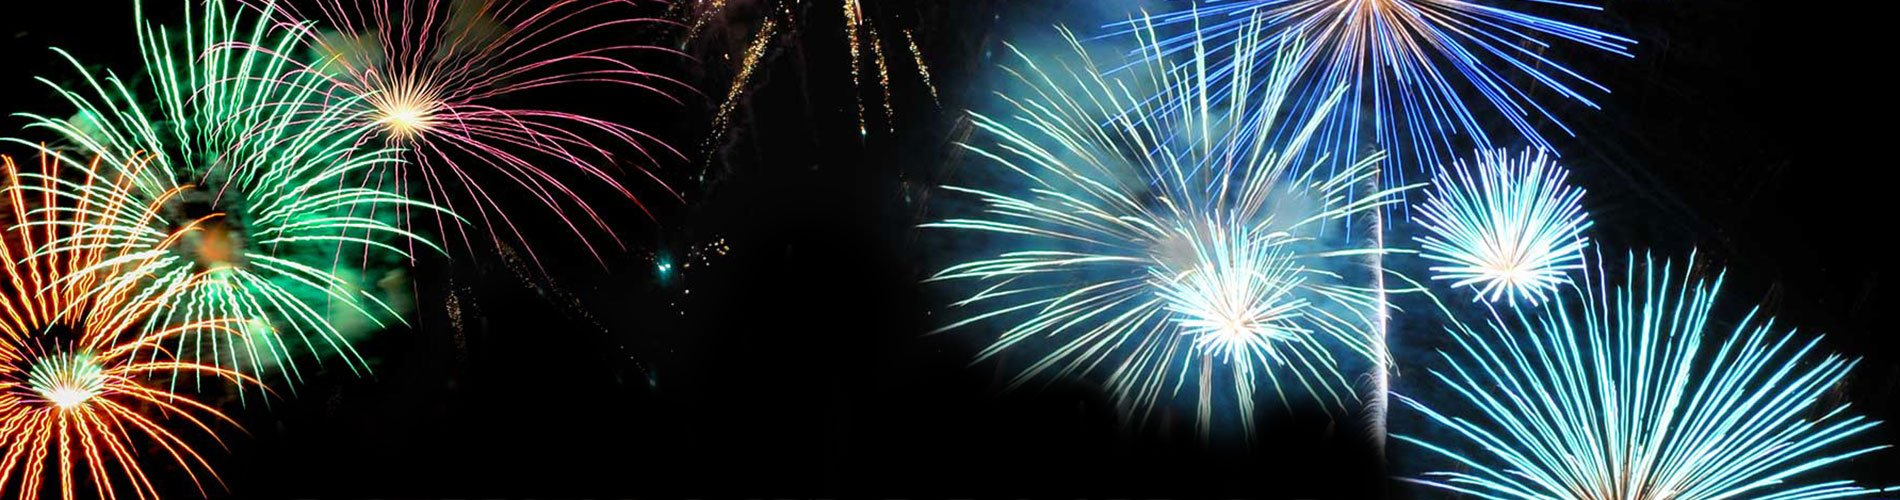 New Year's Eve Event – Spectacular Fireworks | SeaWorld Orlando